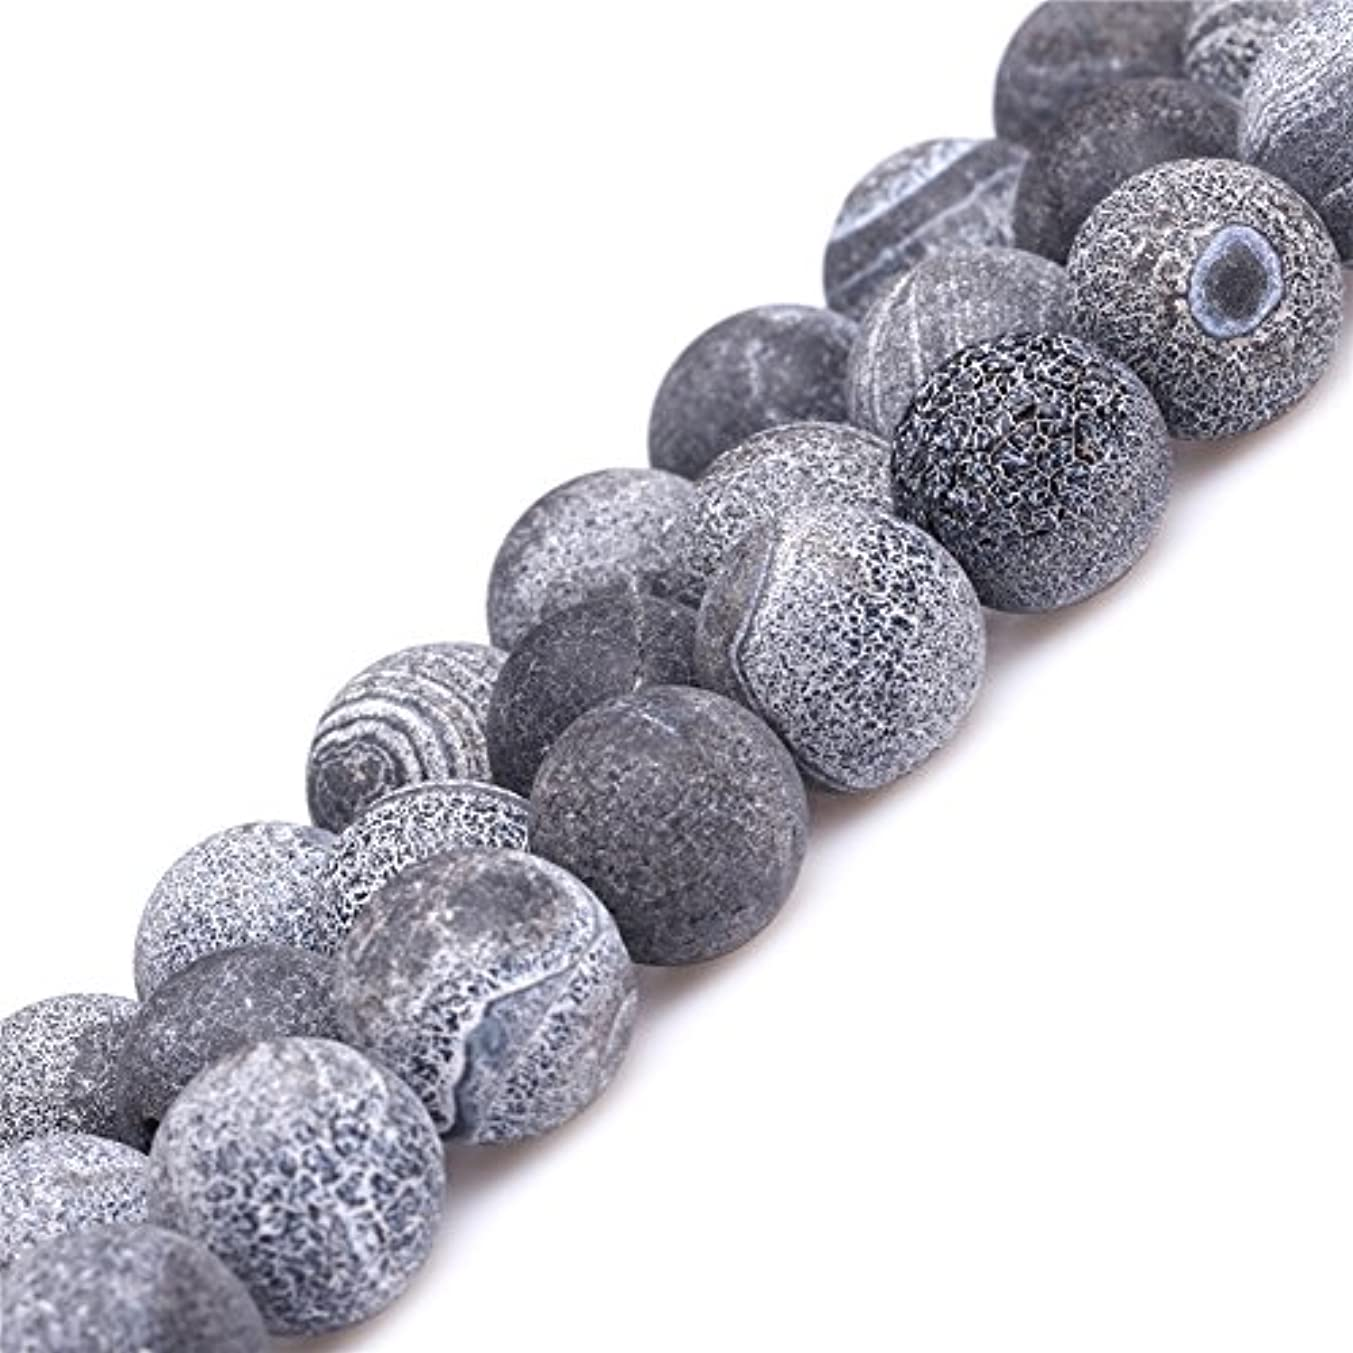 Black Agate Beads for Jewelry Making Natural Gemstone Semi Precious 12mm Round Frosted Matte 15